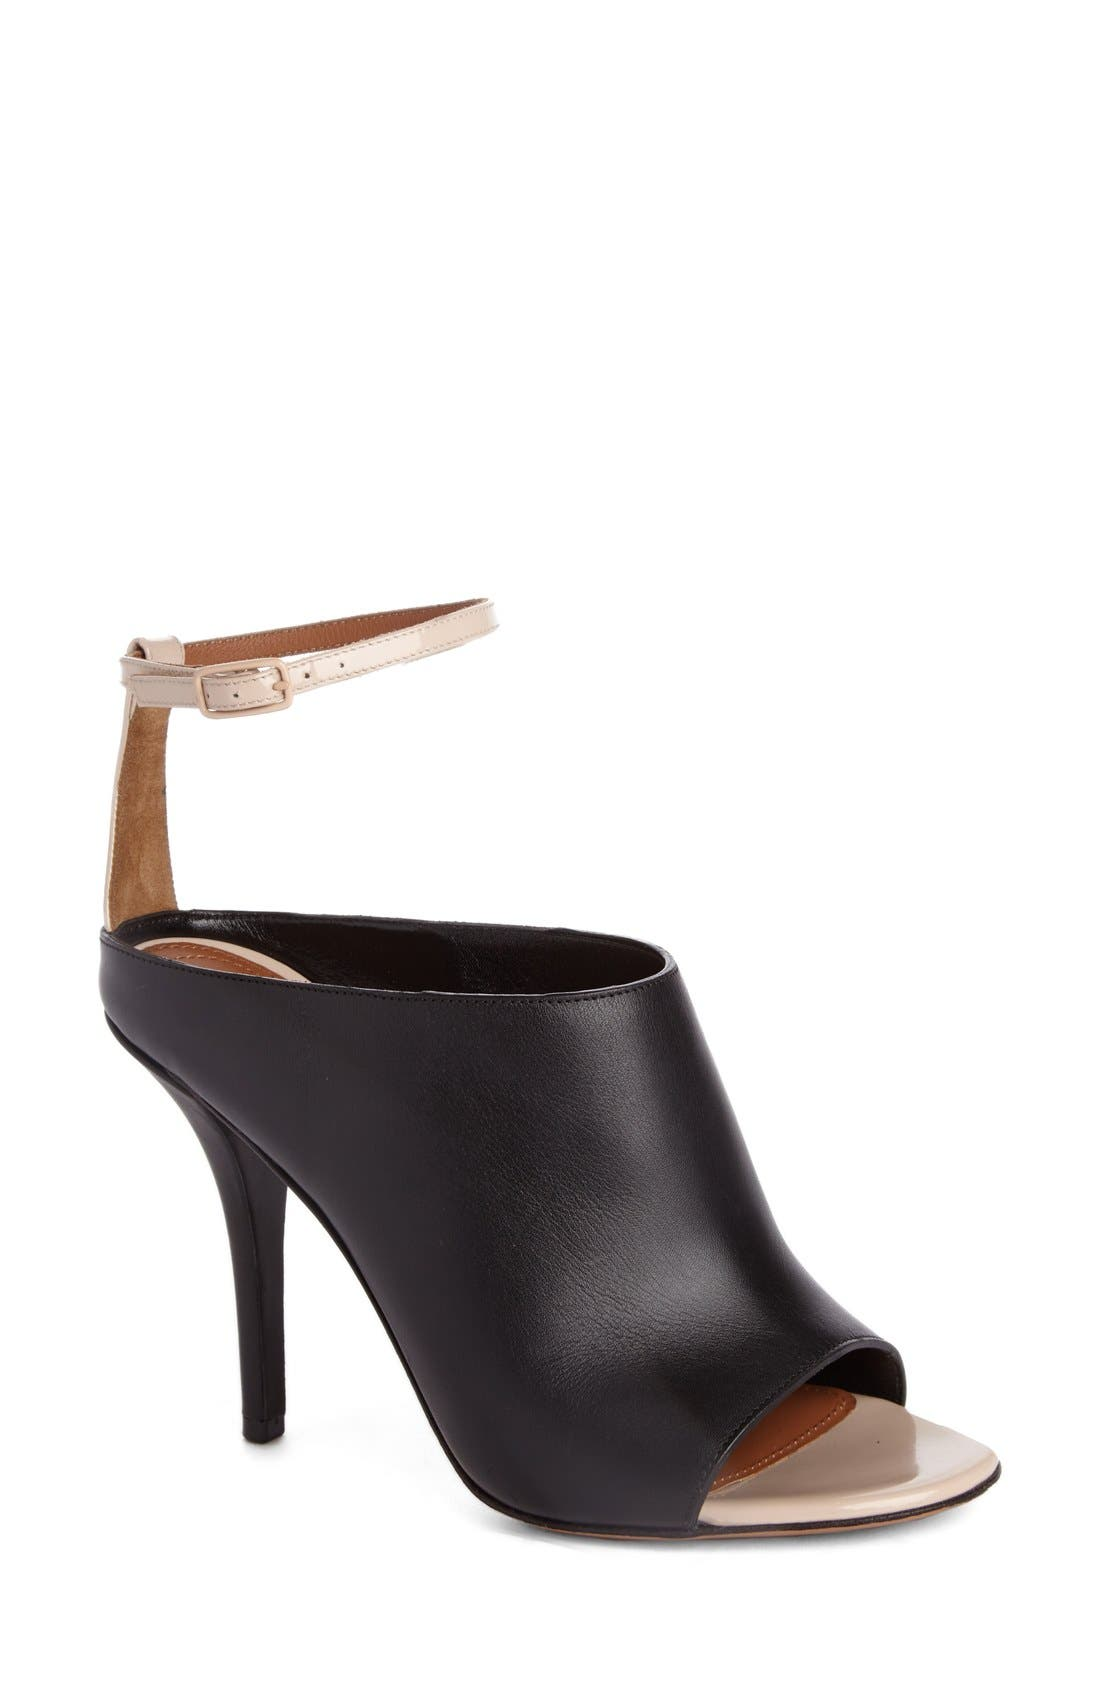 Alternate Image 1 Selected - Givenchy Ankle Strap Sandal (Women)